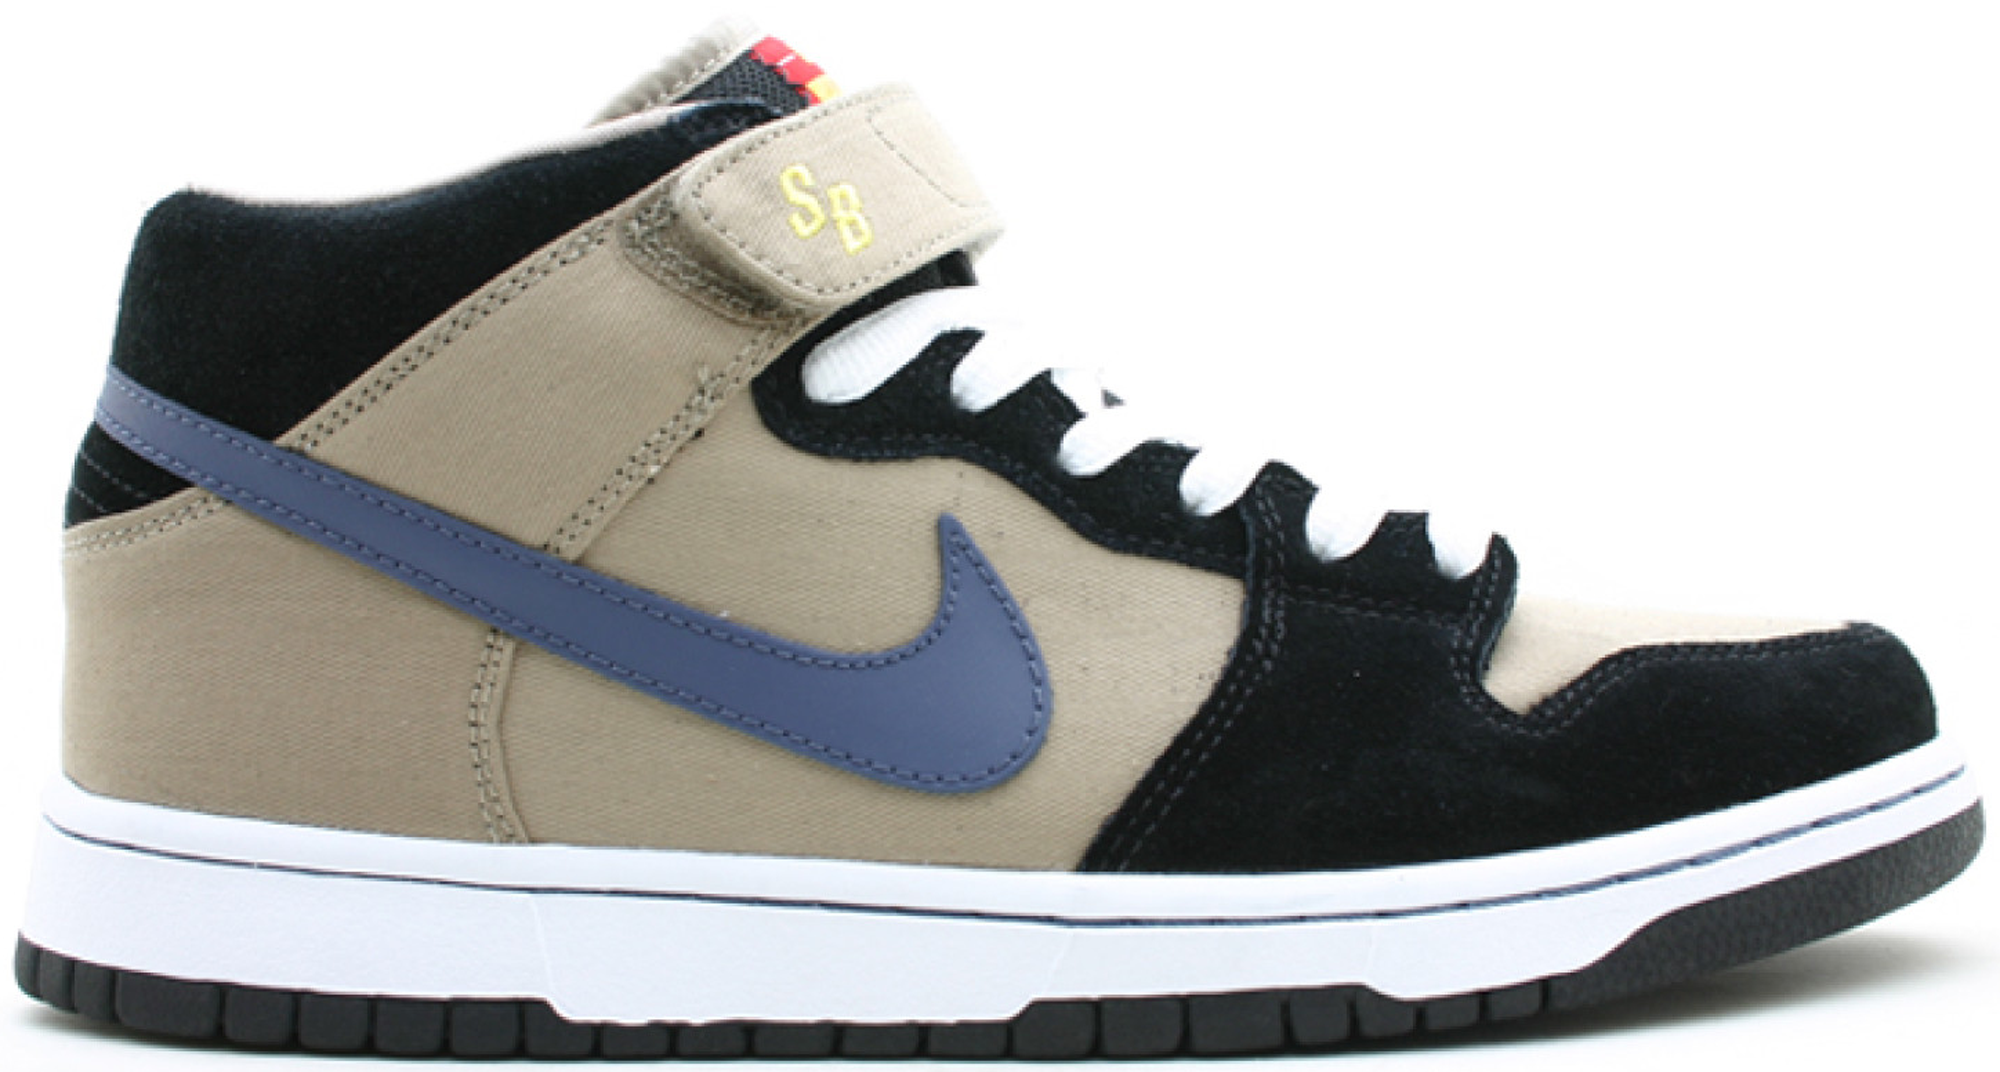 Nike SB Dunk Mid Workwear